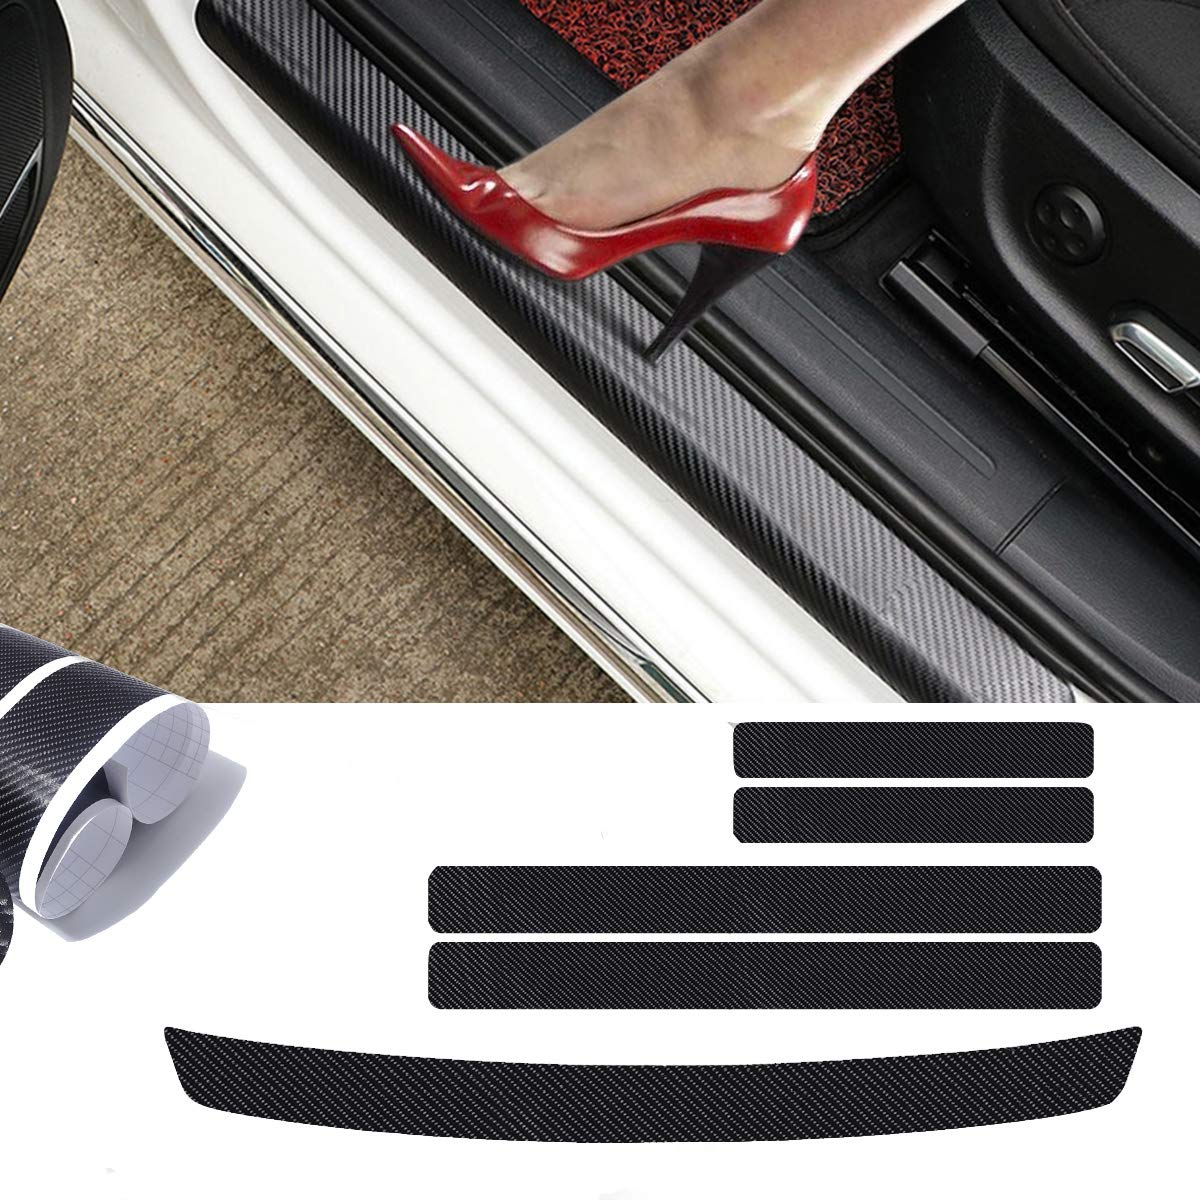 MAXTUF Door Sill Protector, 5Pcs 4D Carbon Fiber Car Door Guard Bumper Protection Trim Cover Scuff Plate Sticker with Strong Adhesive for Universal Car SUV Pickup Truck